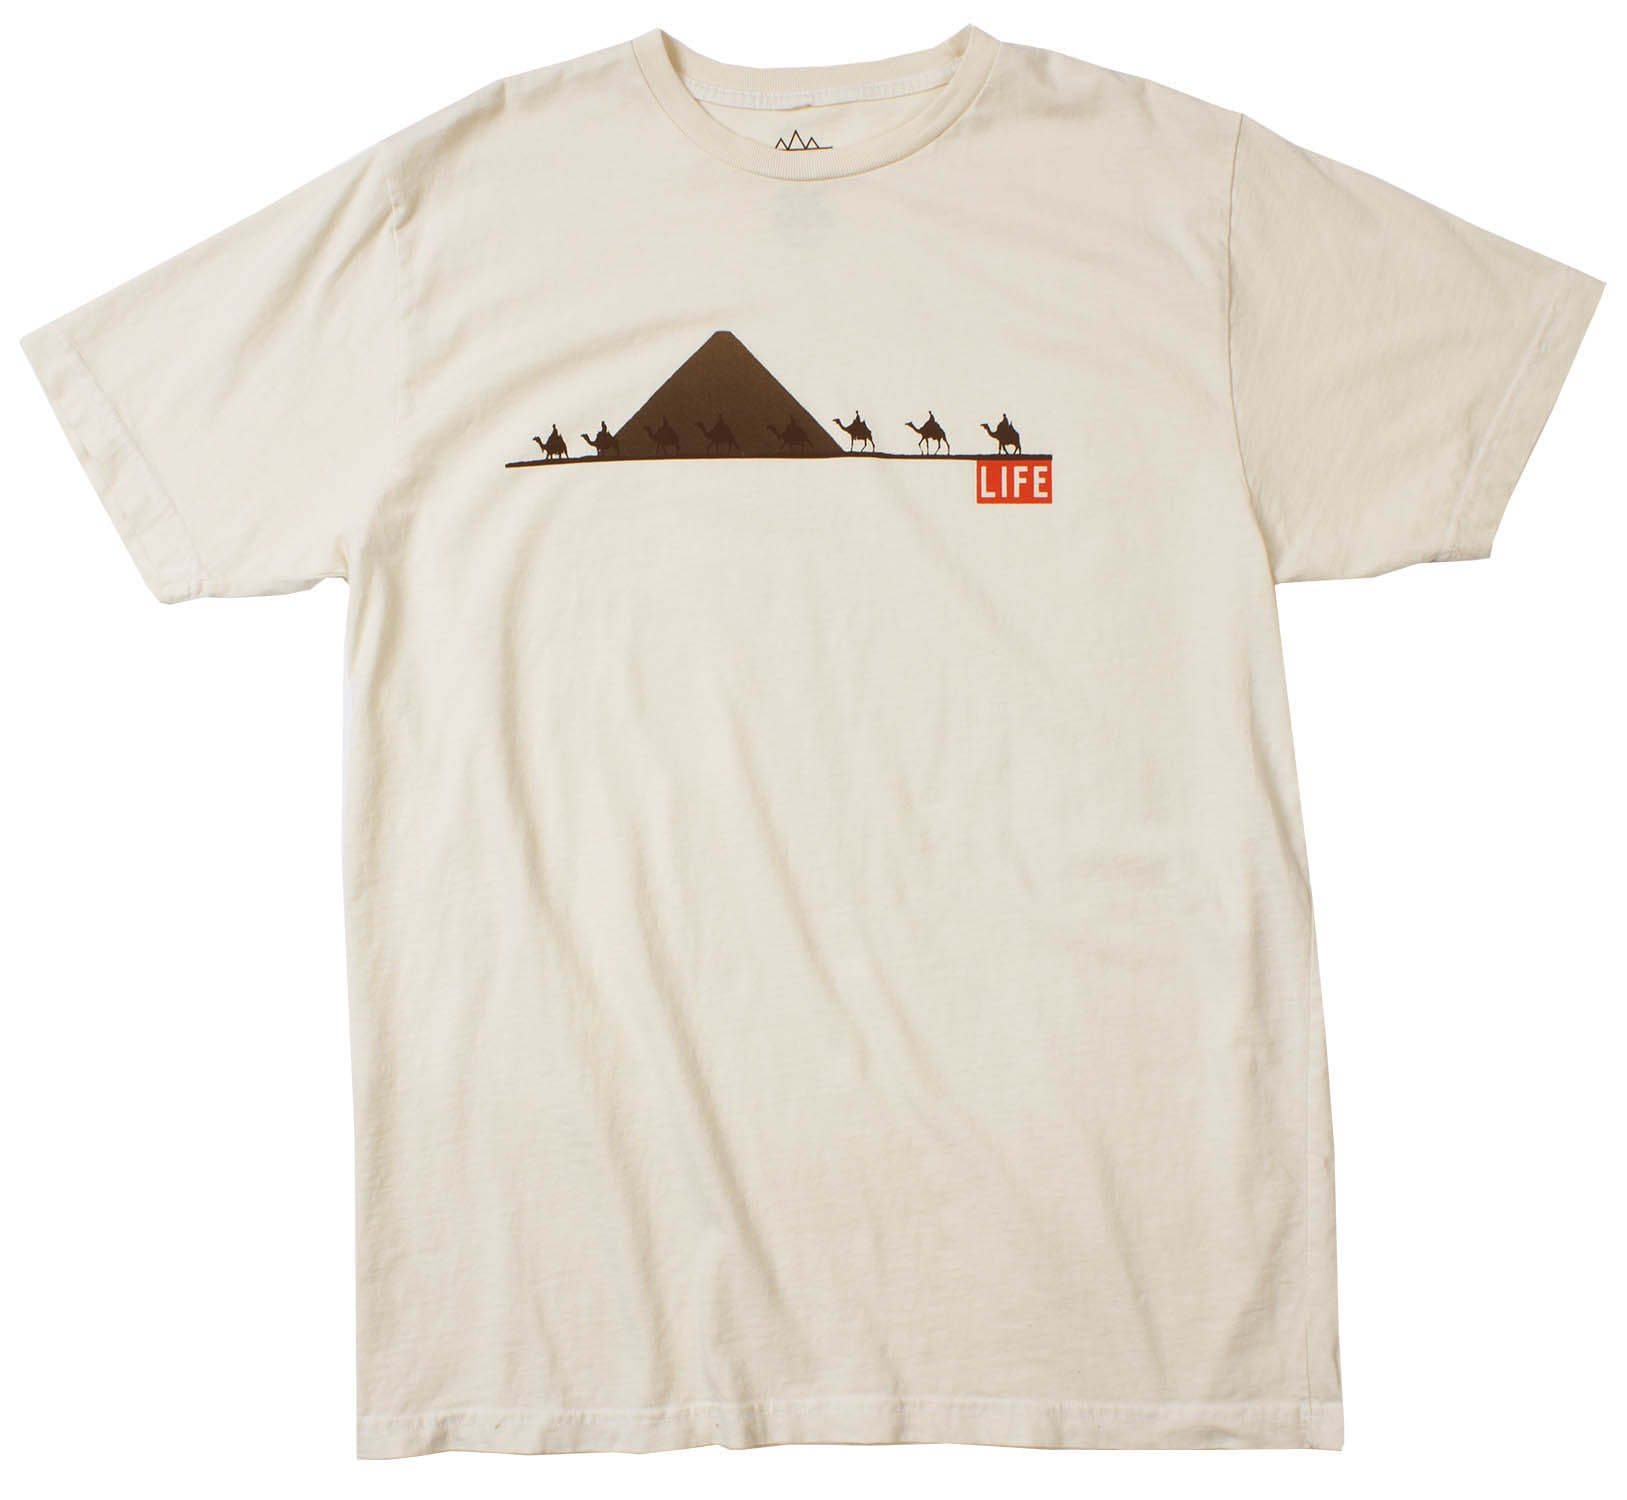 6ecafffcd6789 Altru Apparel Mens Graphic T-shirts with original designs and colabs.